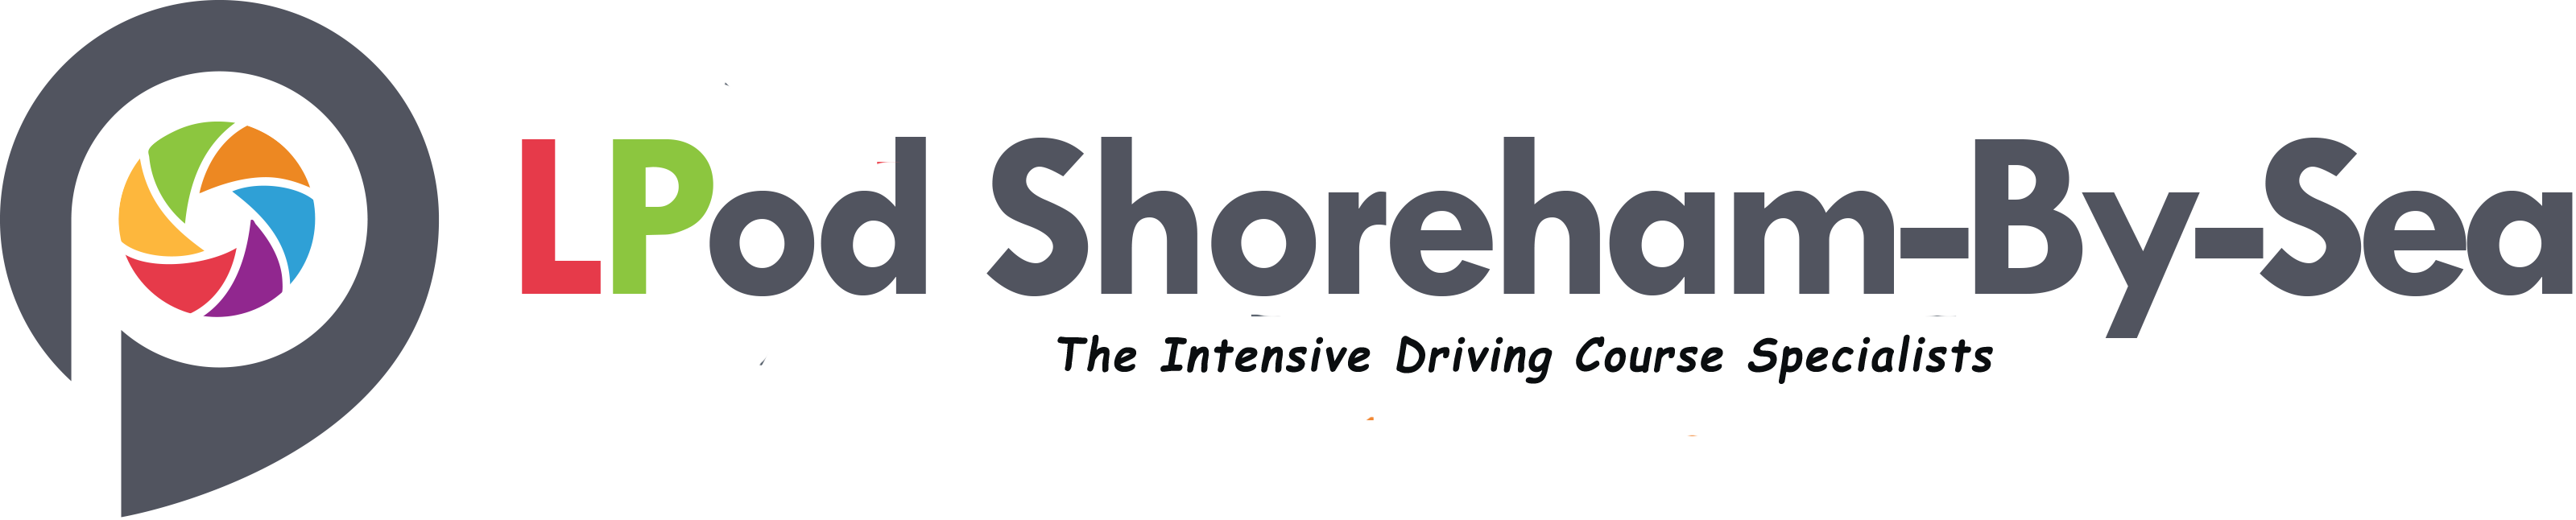 intensive driving courses shoreham-by-sea, intensive driving lessons shoreham-by-sea, intensive driving school shoreham-by-sea